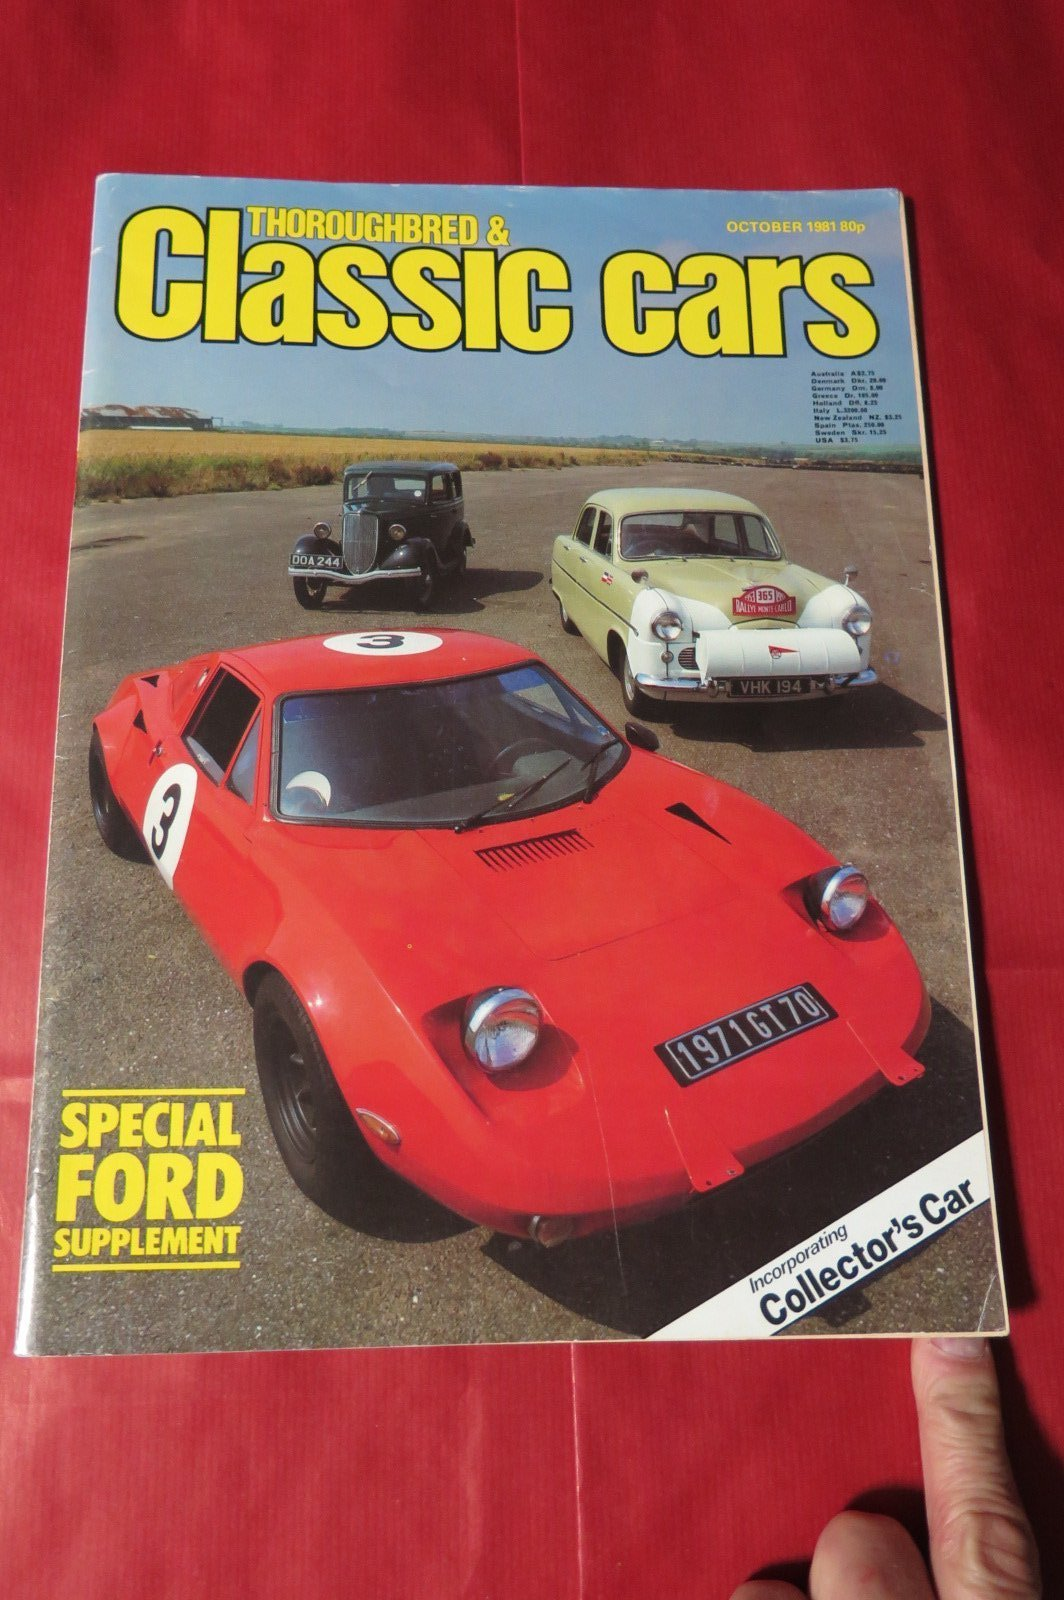 CLASSIC CARS,THOROUGHBRED & CLASSIC CARS,CAR MAGAZINE,FORD,RACING,FORD GT,